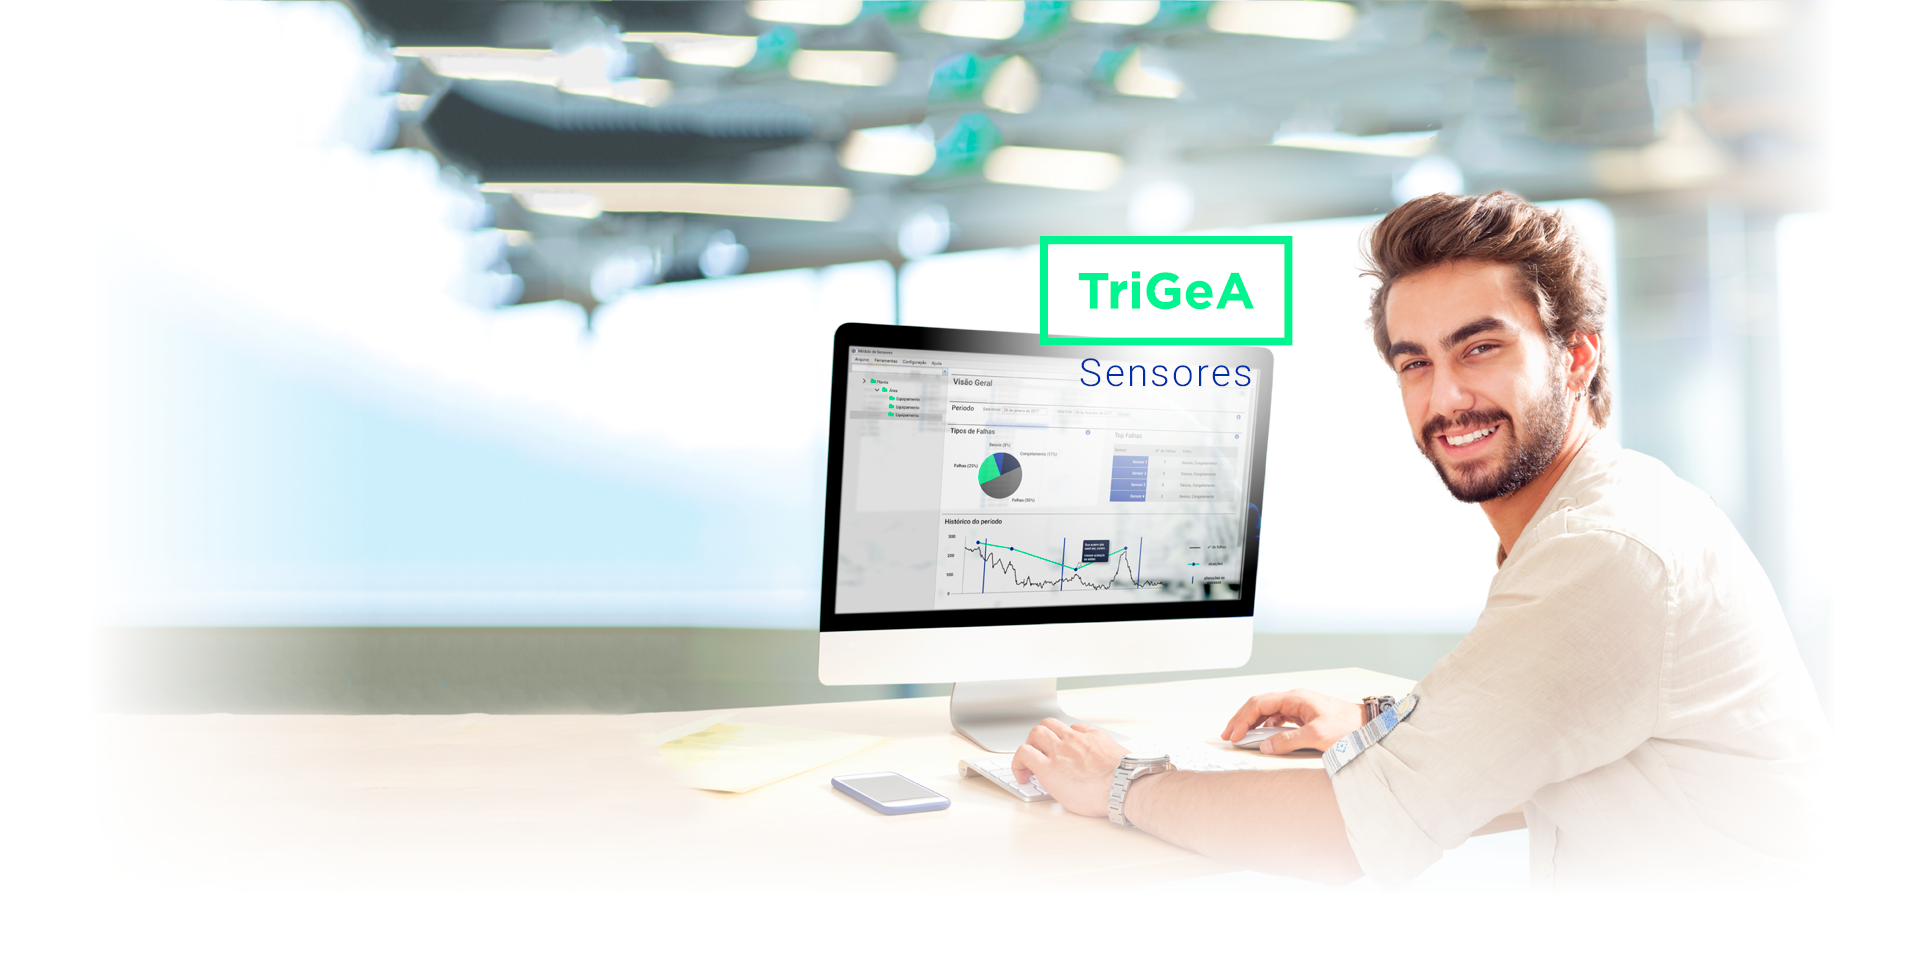 Trisolutions-TriGeA-Sensores-BANNER-Home2